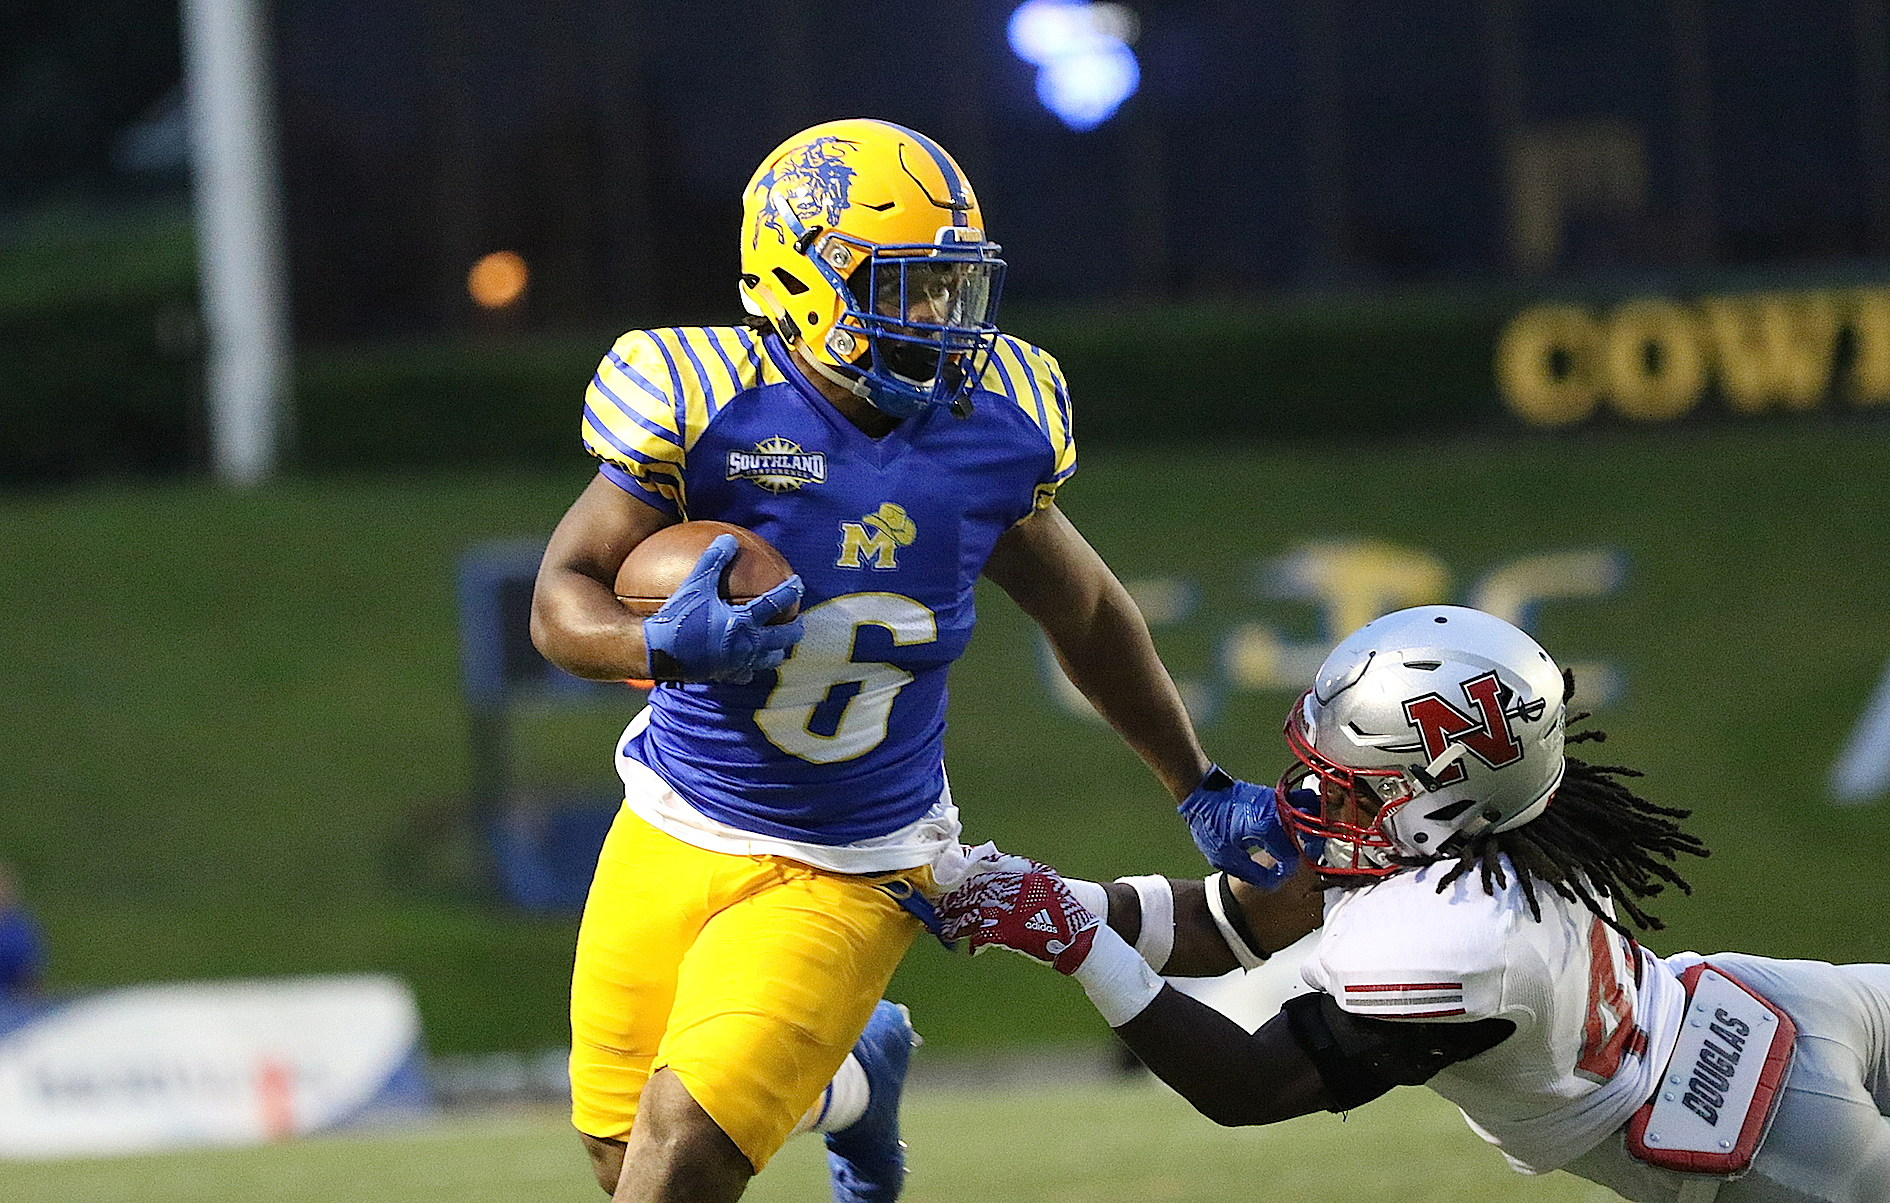 McNeese Football (Photo provided by and taken by Richard J. Martin MSU)